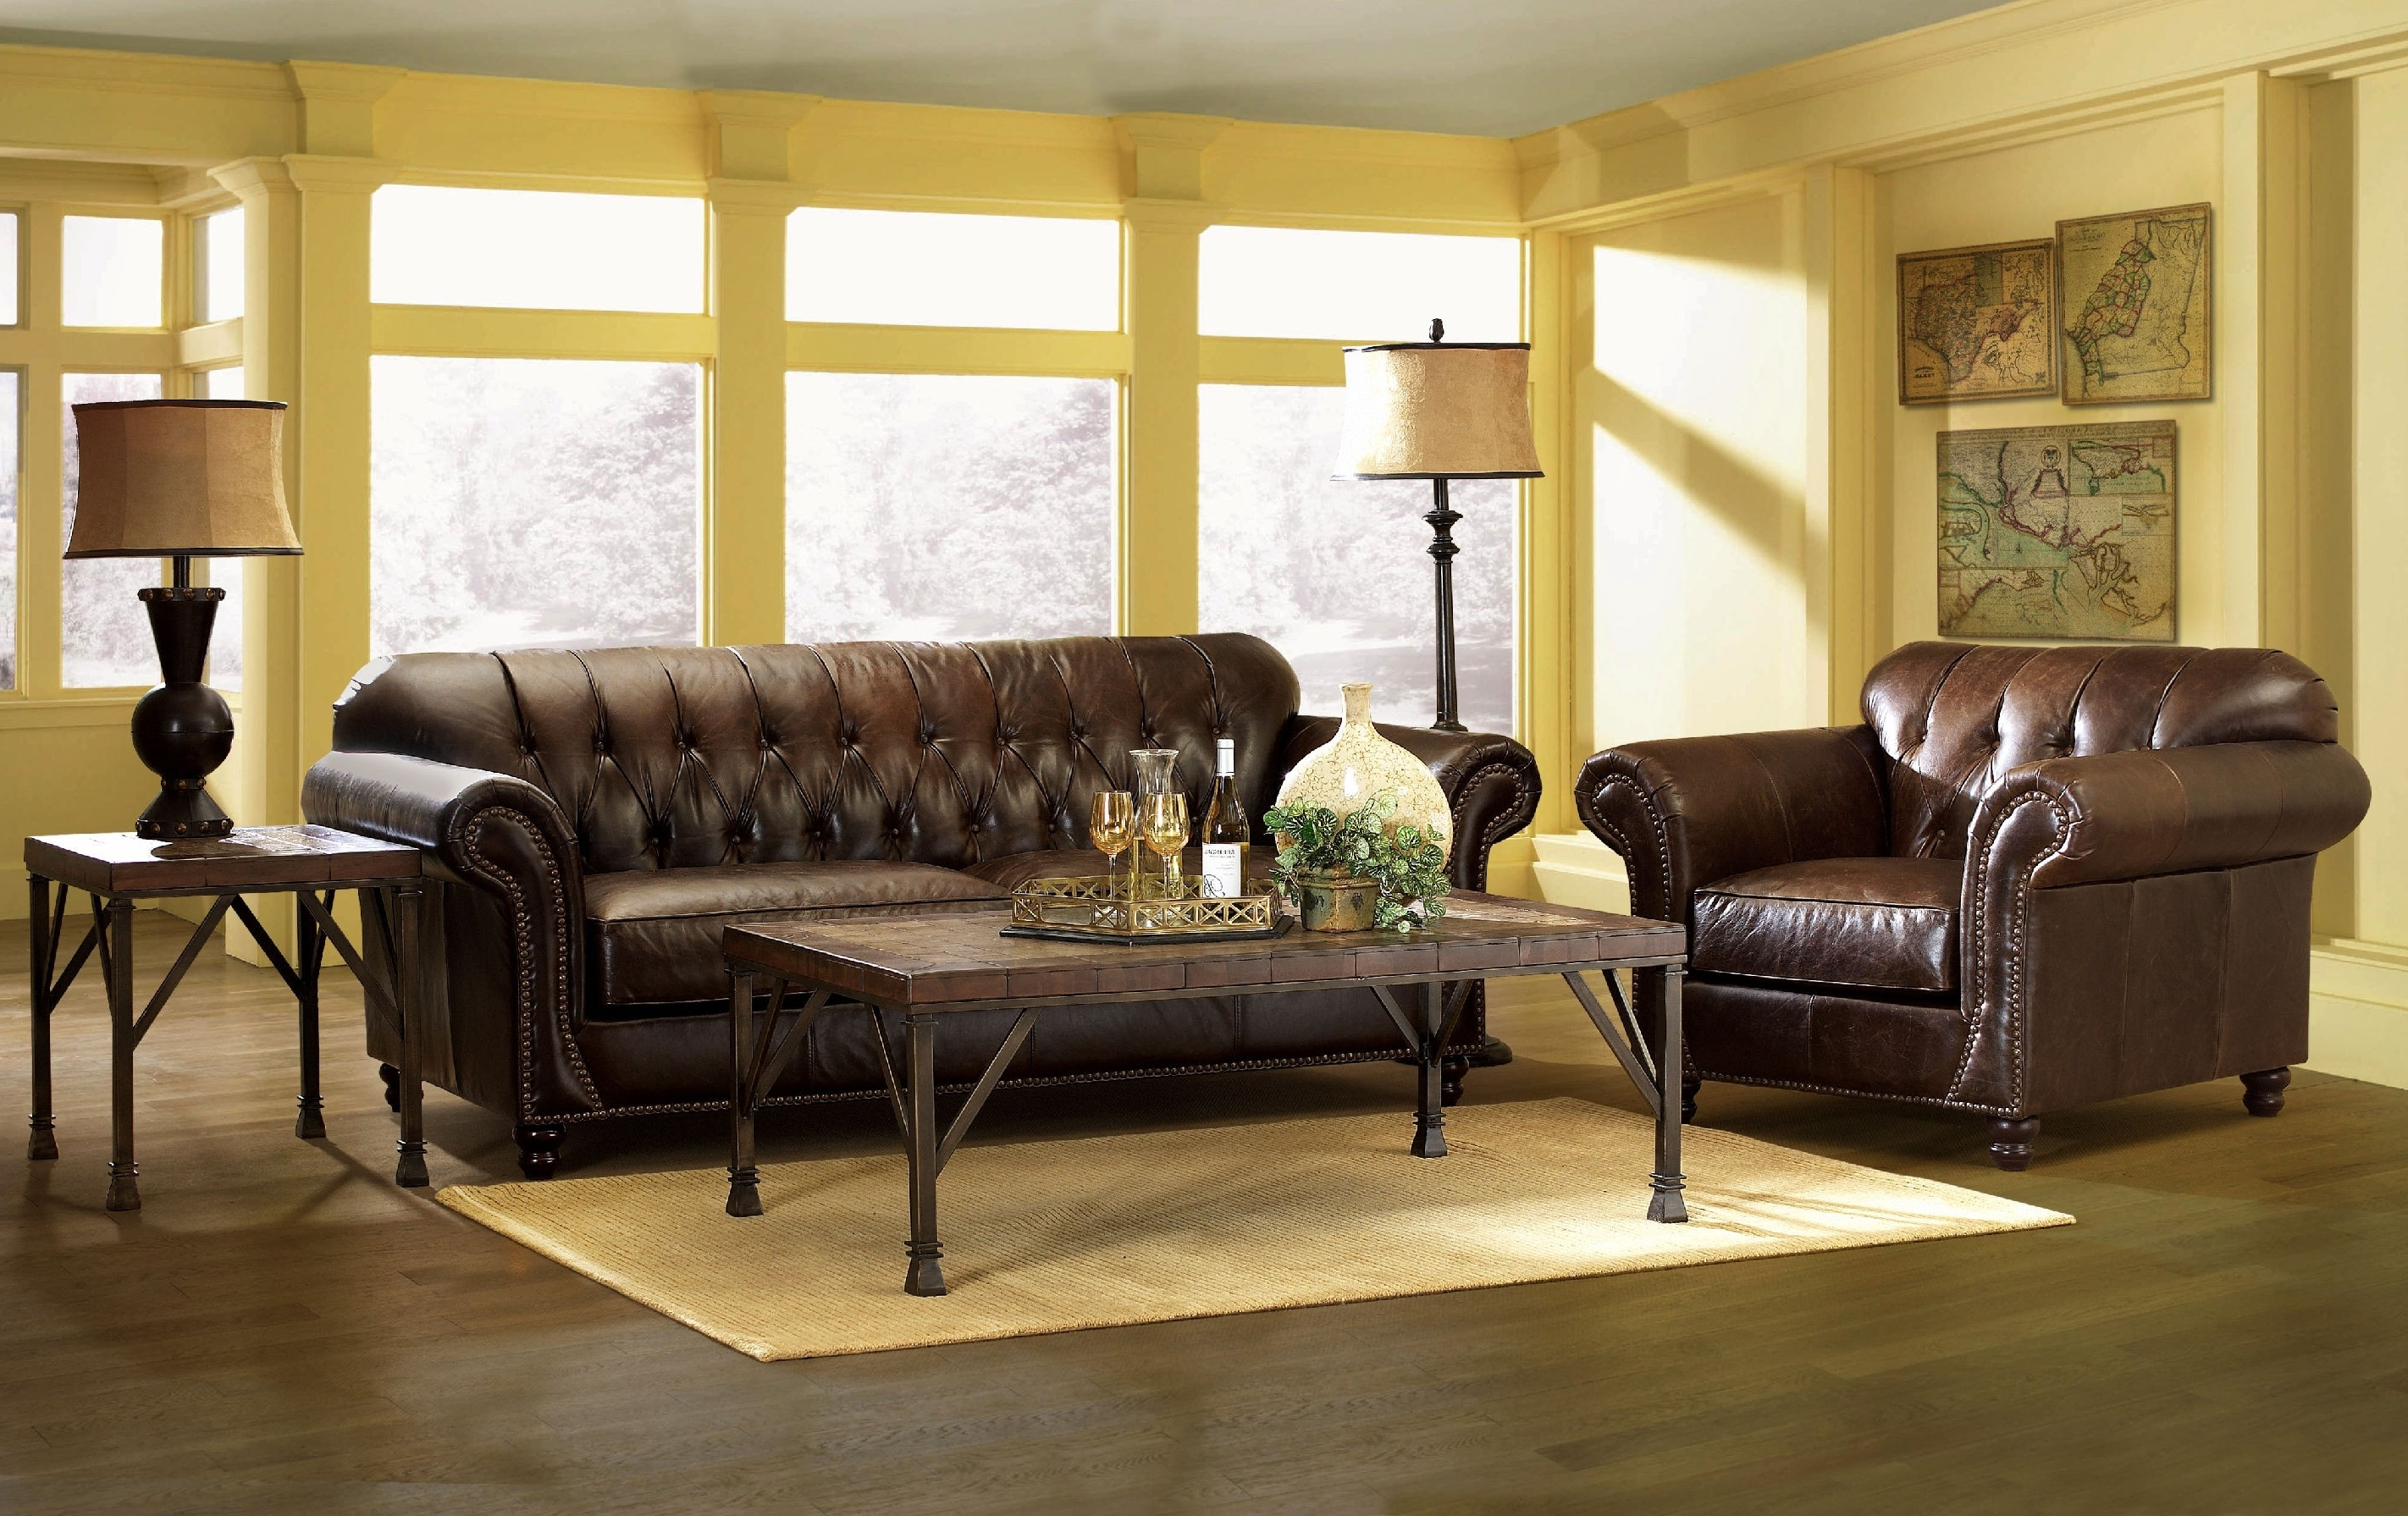 Leather Sectional Living Room Decor Tan Couch Ideas Sofa Sets With Regard To Recent Houzz Sectional Sofas (View 13 of 15)